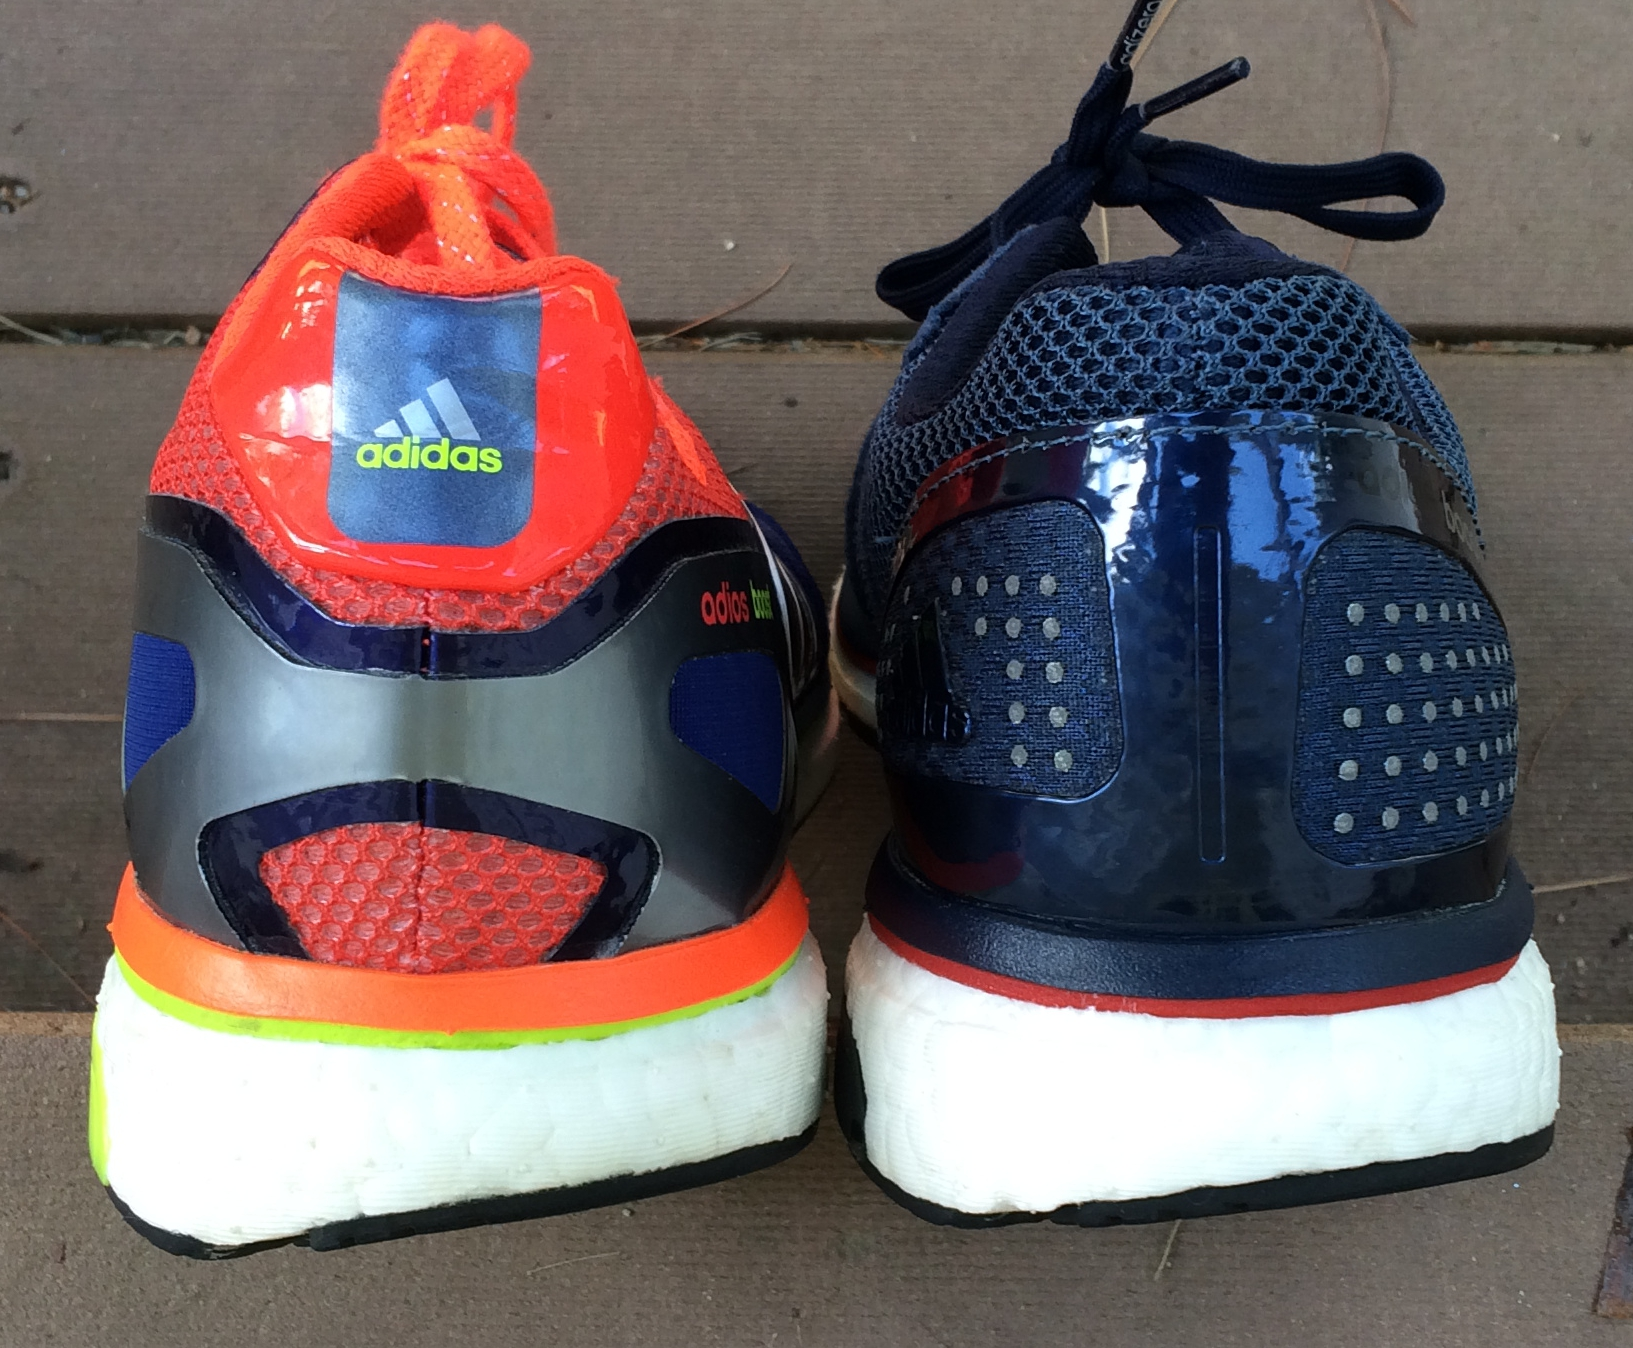 d5bb3b8996c4 adidas Adios Boost 2 Review  Same Great Ride